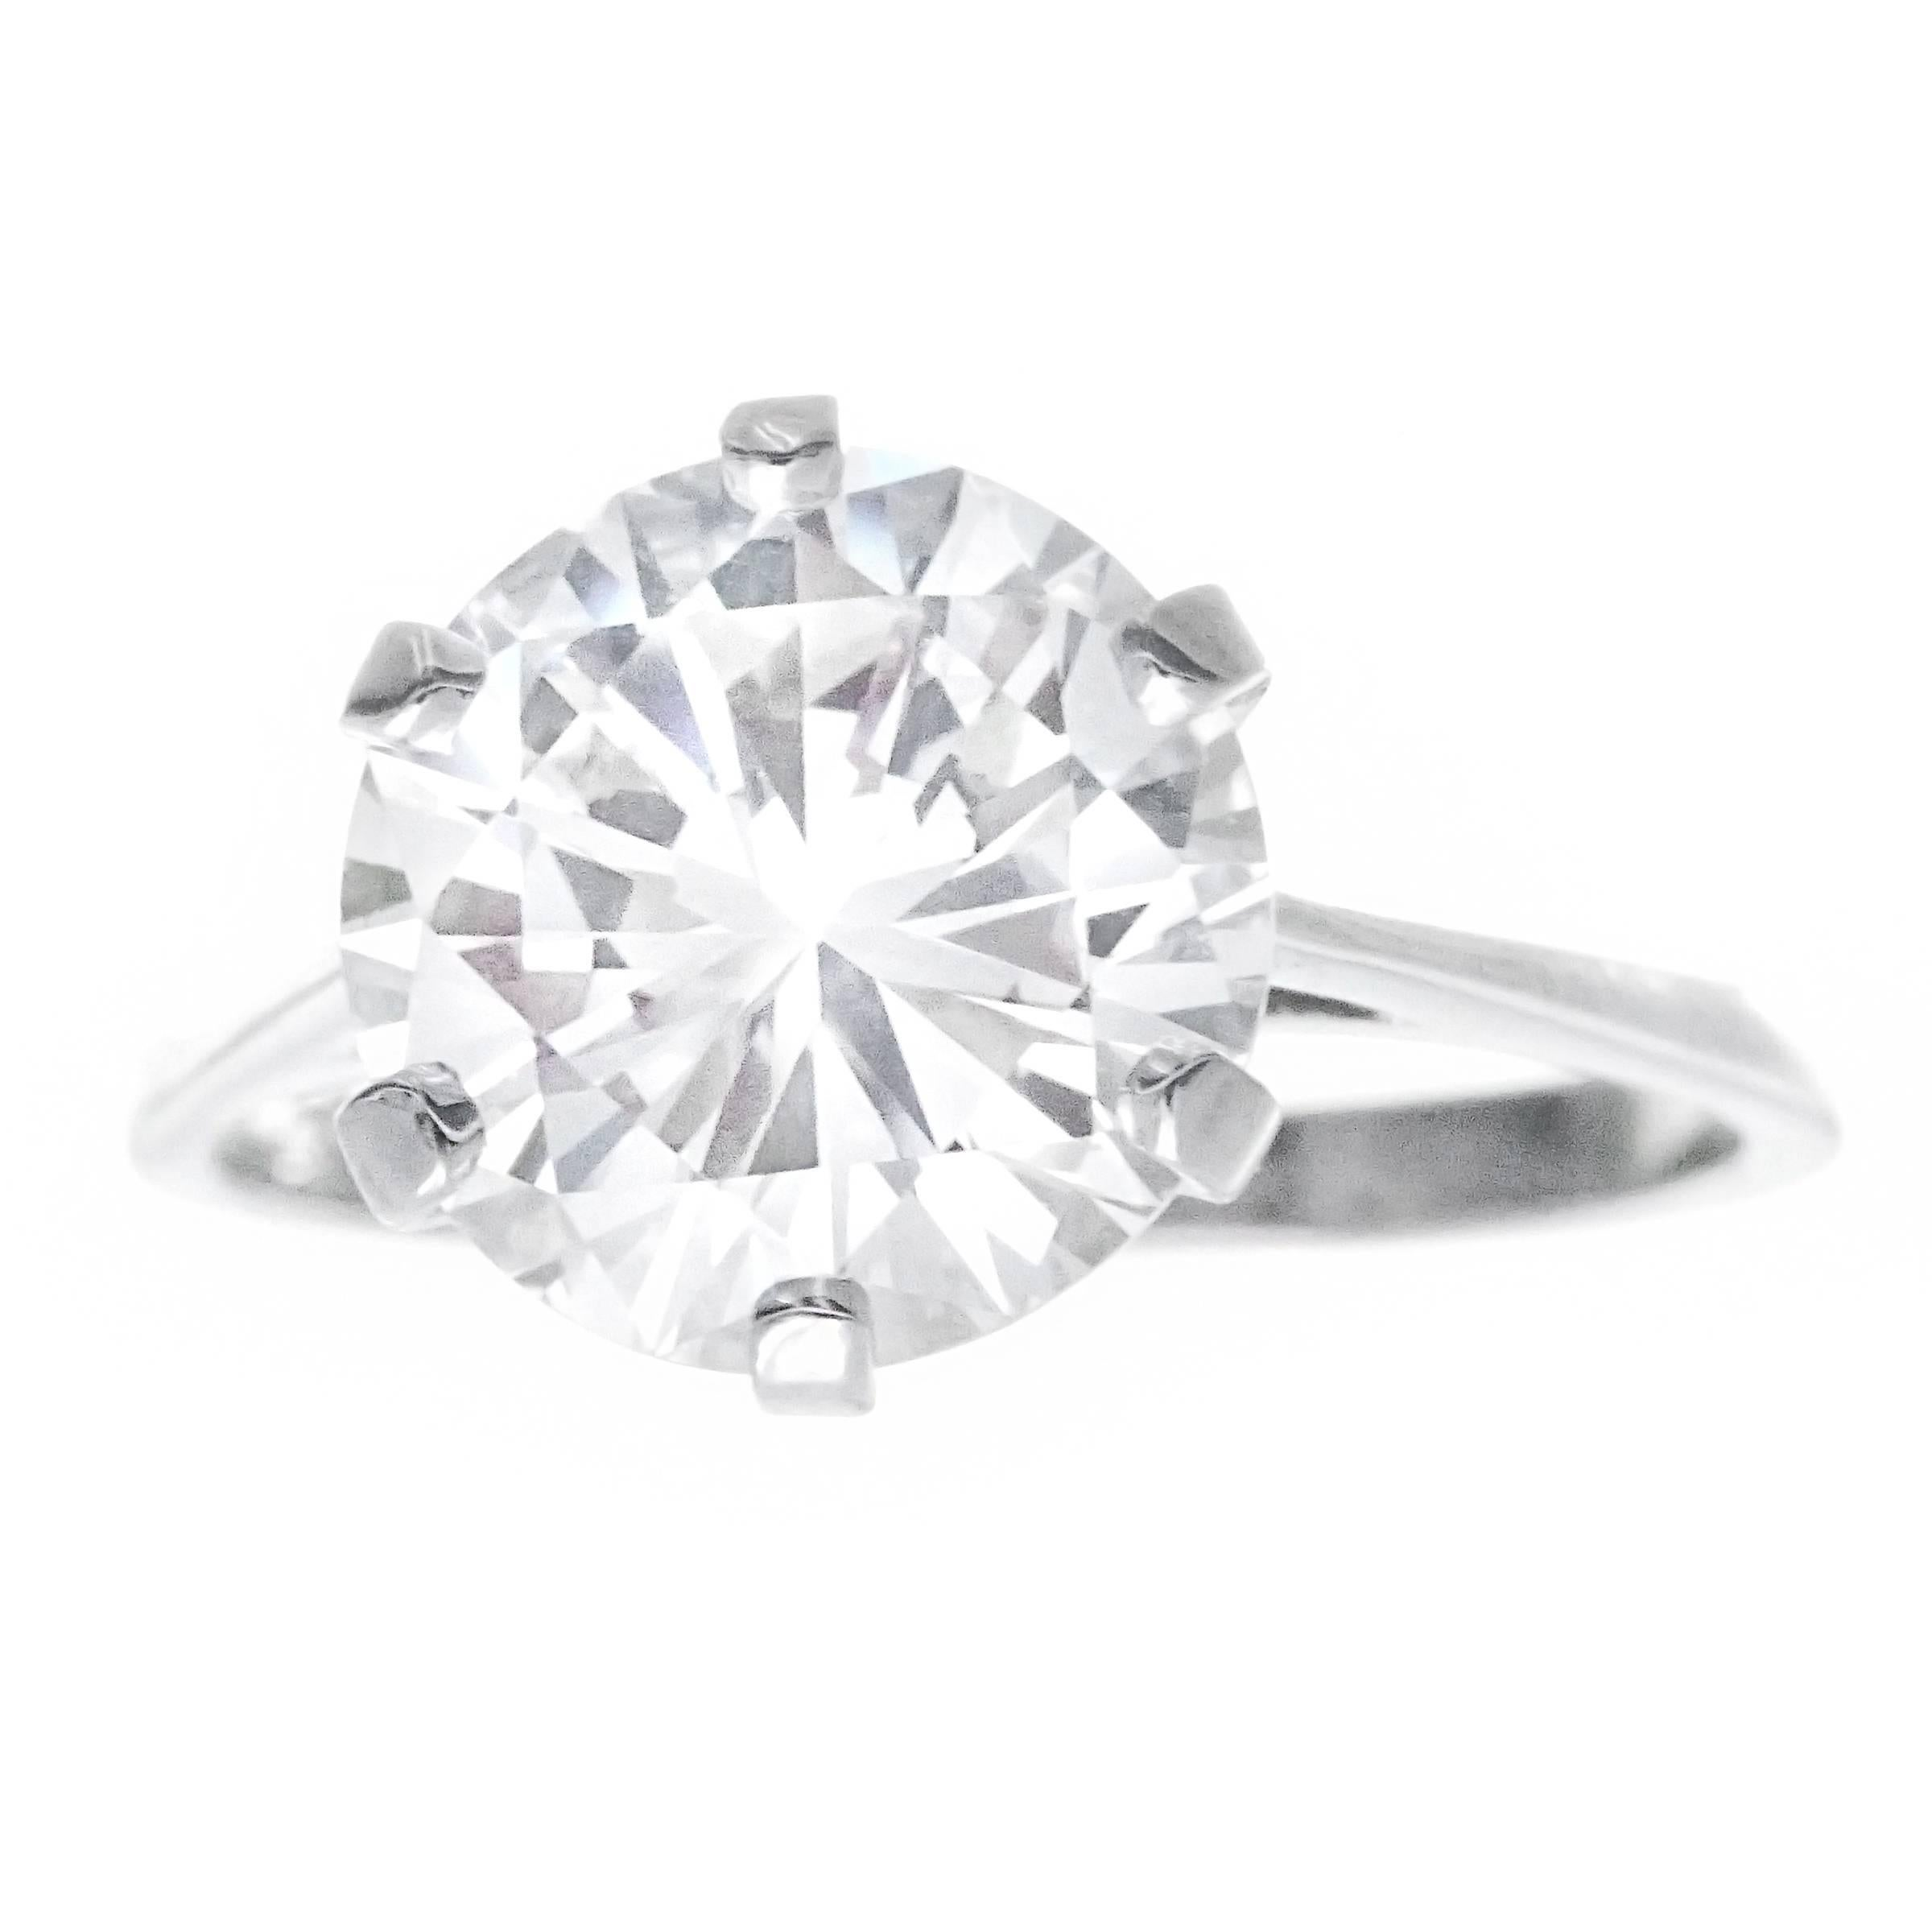 gia shaped diamonds galleries diamond d co shape rosenberg oval iia carat flawless ring type